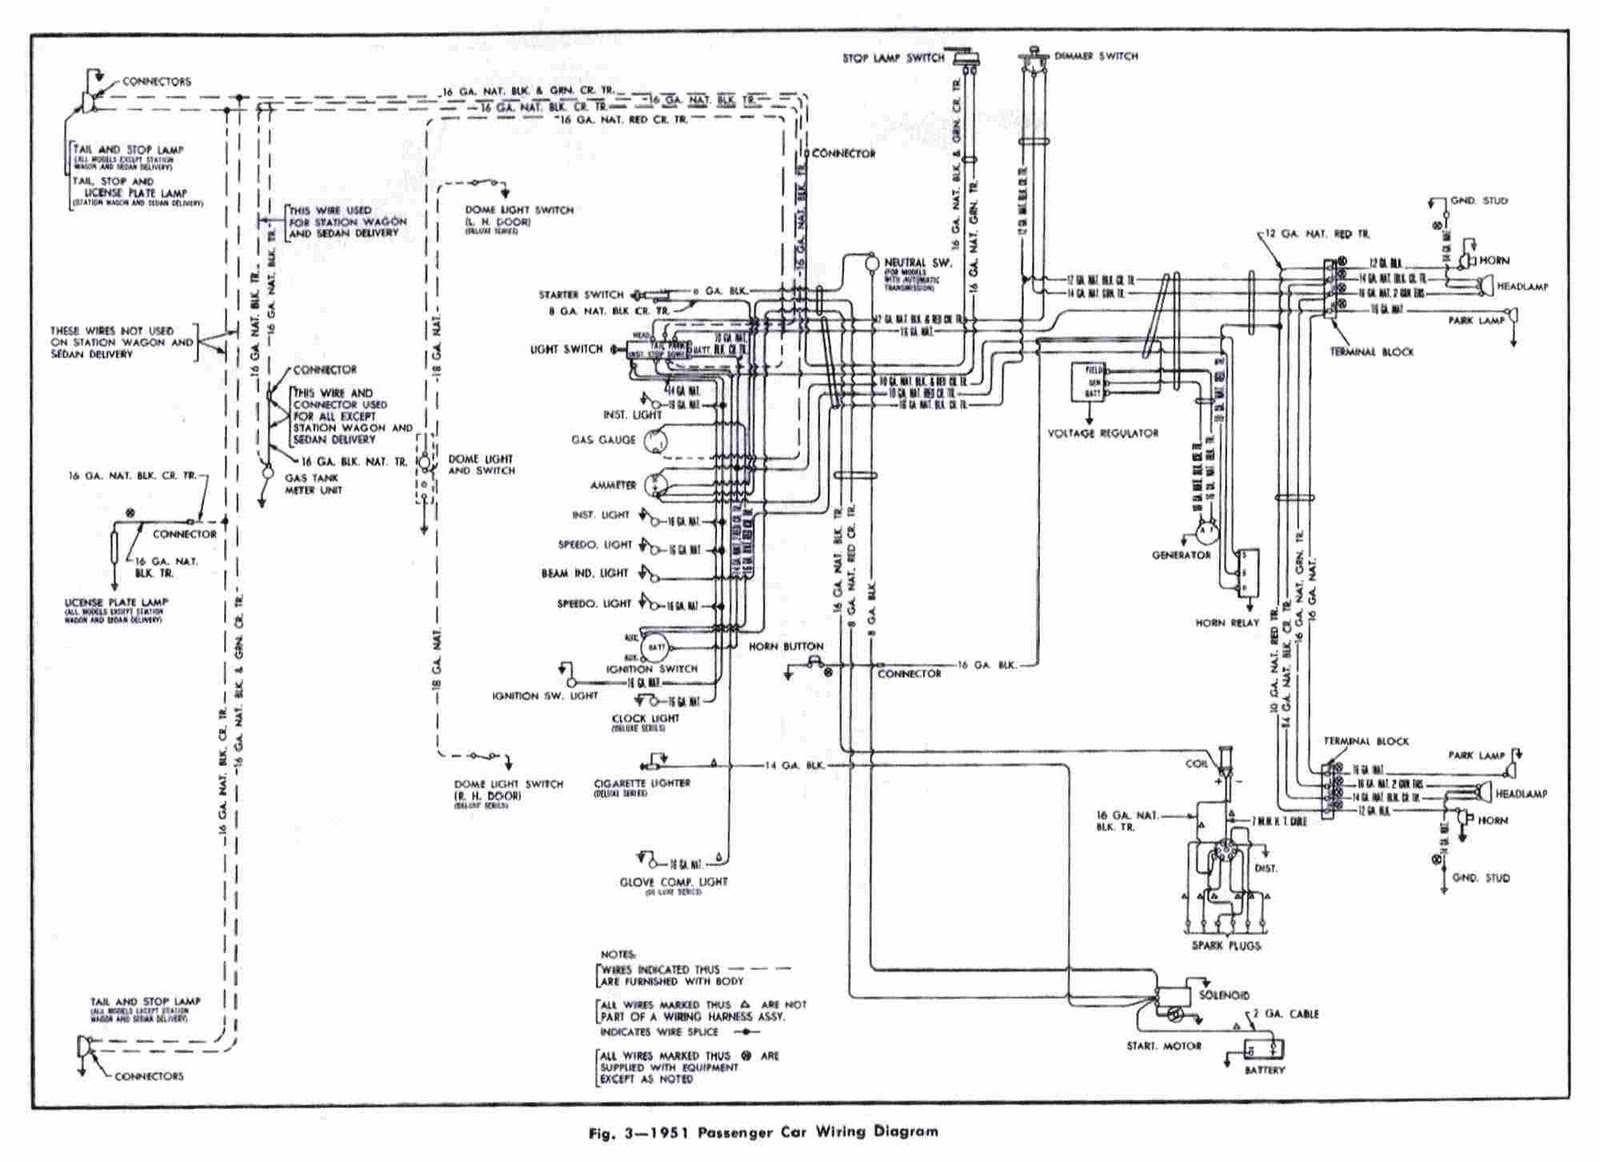 Chevrolet passenger car wiring diagram all about